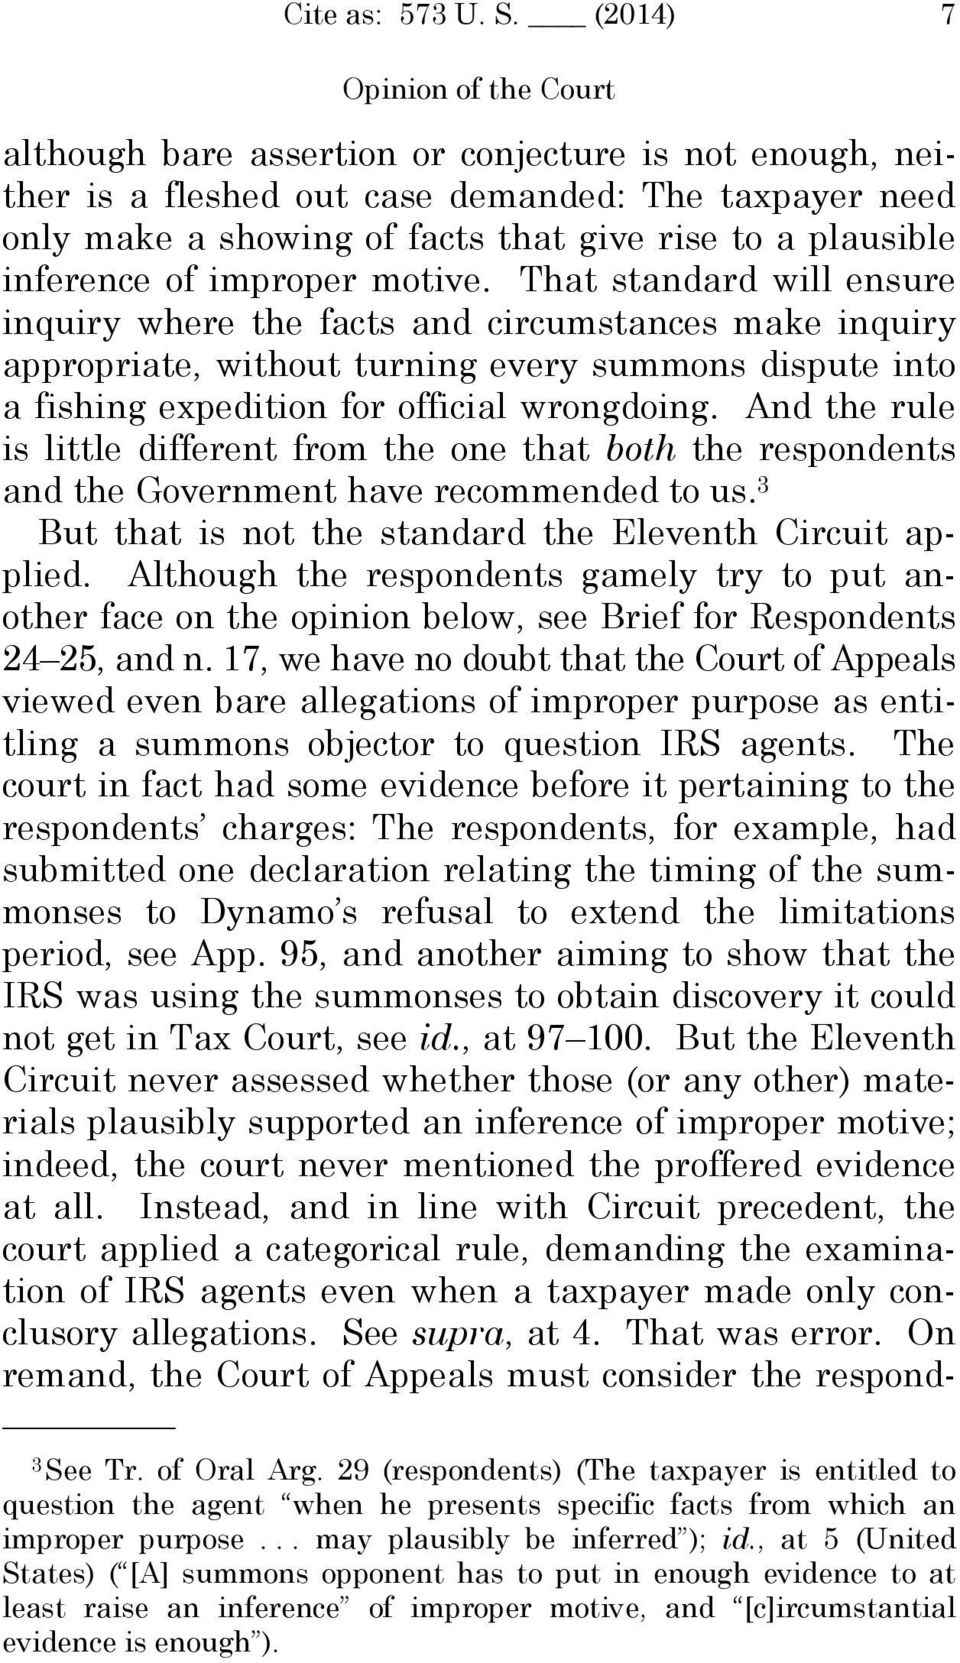 improper motive. That standard will ensure inquiry where the facts and circumstances make inquiry appropriate, without turning every summons dispute into a fishing expedition for official wrongdoing.